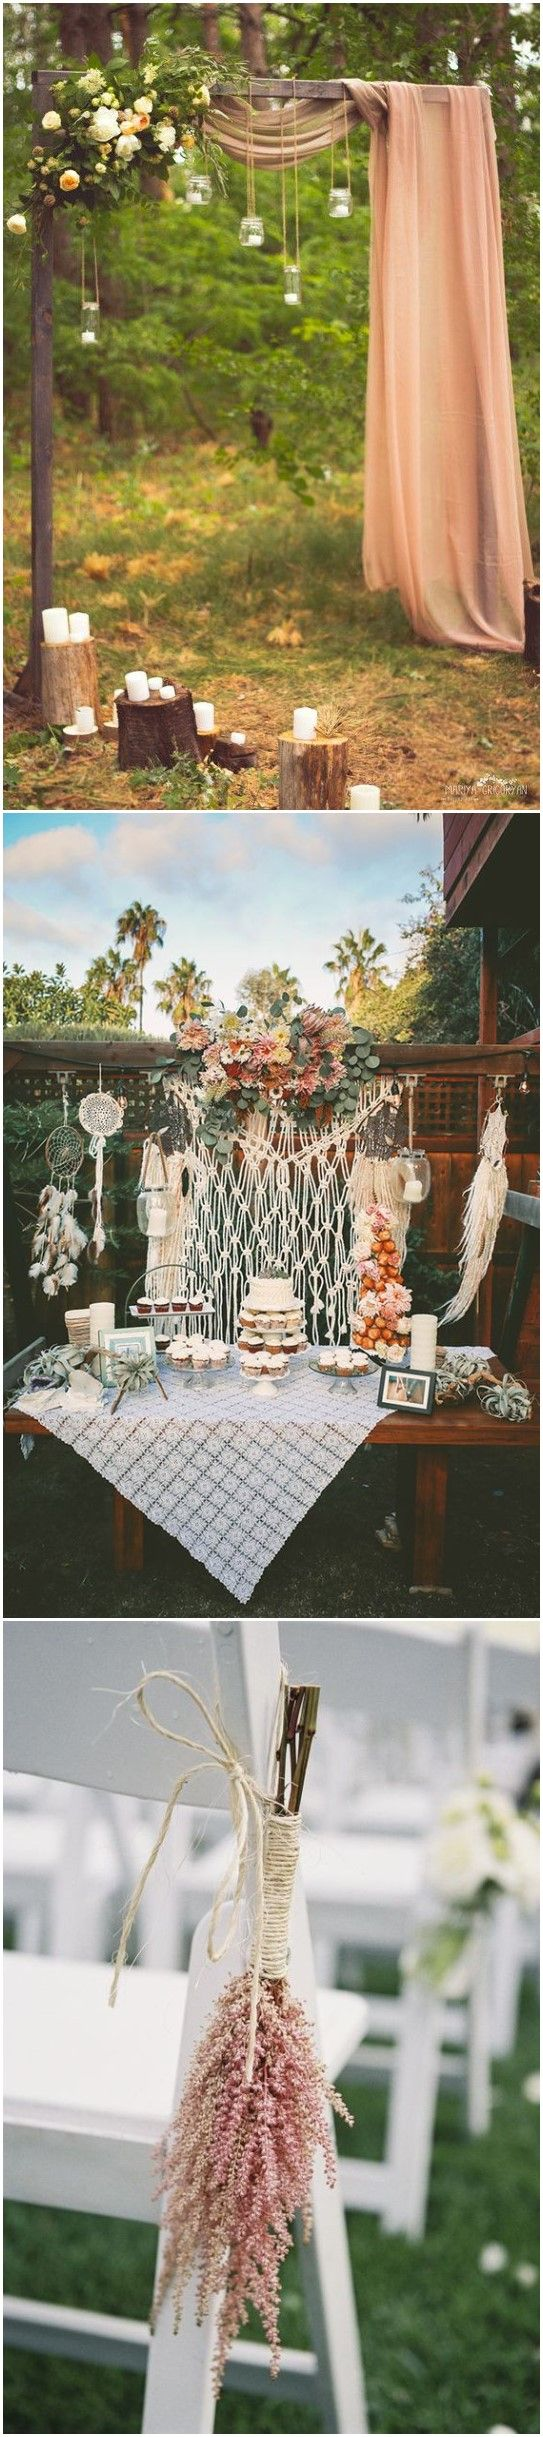 DD JjWedding Ideas » 20+ Gorgeous Boho Wedding Décor Ideas on Pinterest » ❤️ See more: http://www.weddinginclude.com/2017/05/boho-wedding-decor-ideas-on-pinterest/